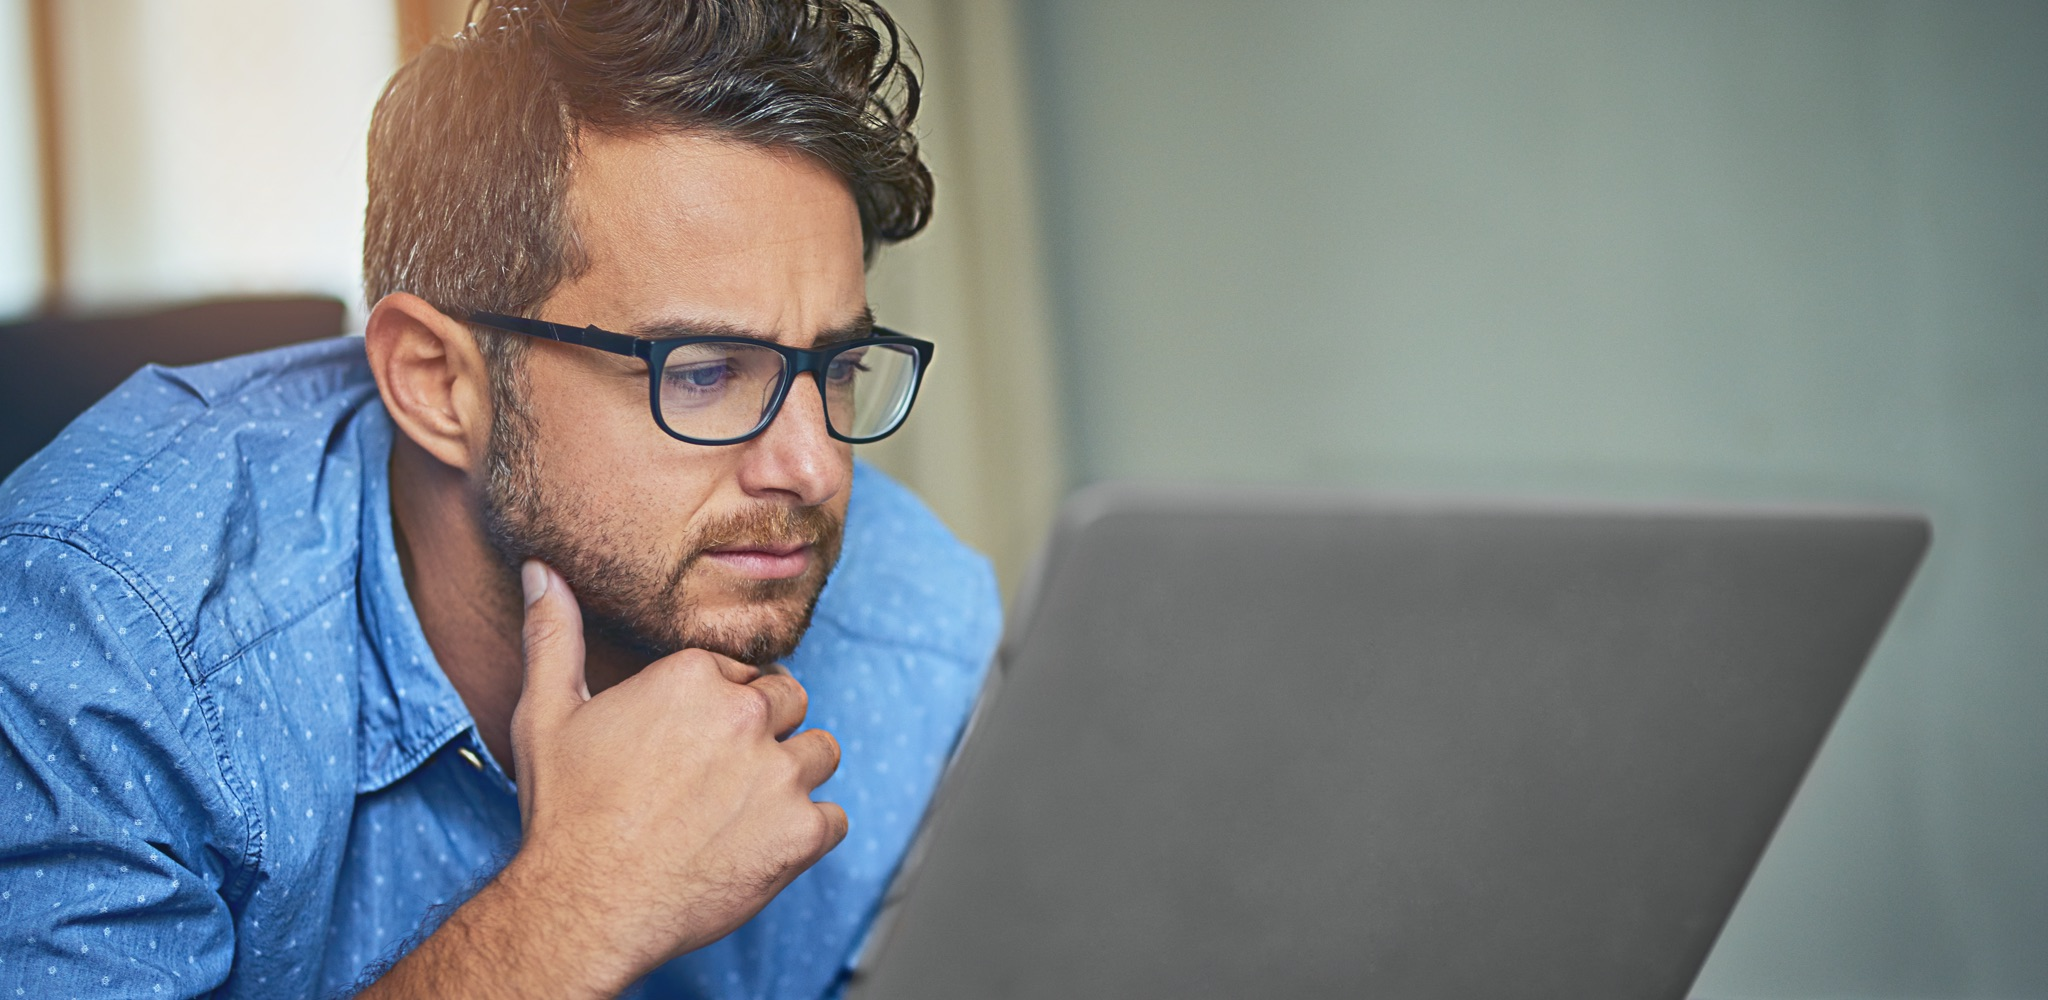 Man in a blue shirt and glasses looking at laptop screen.